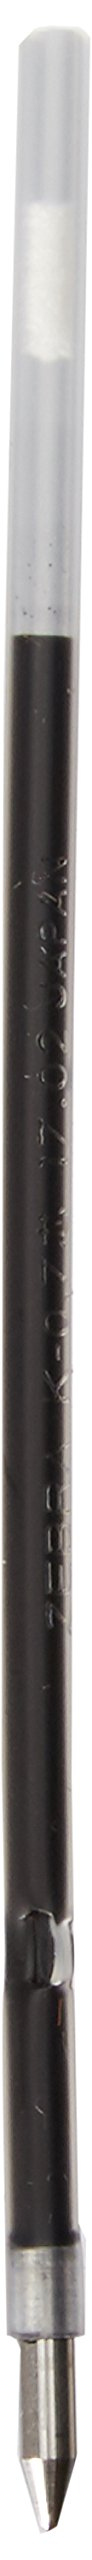 Zebra Oil-Based Ballpoint Pen Refill for AirFit Light,...